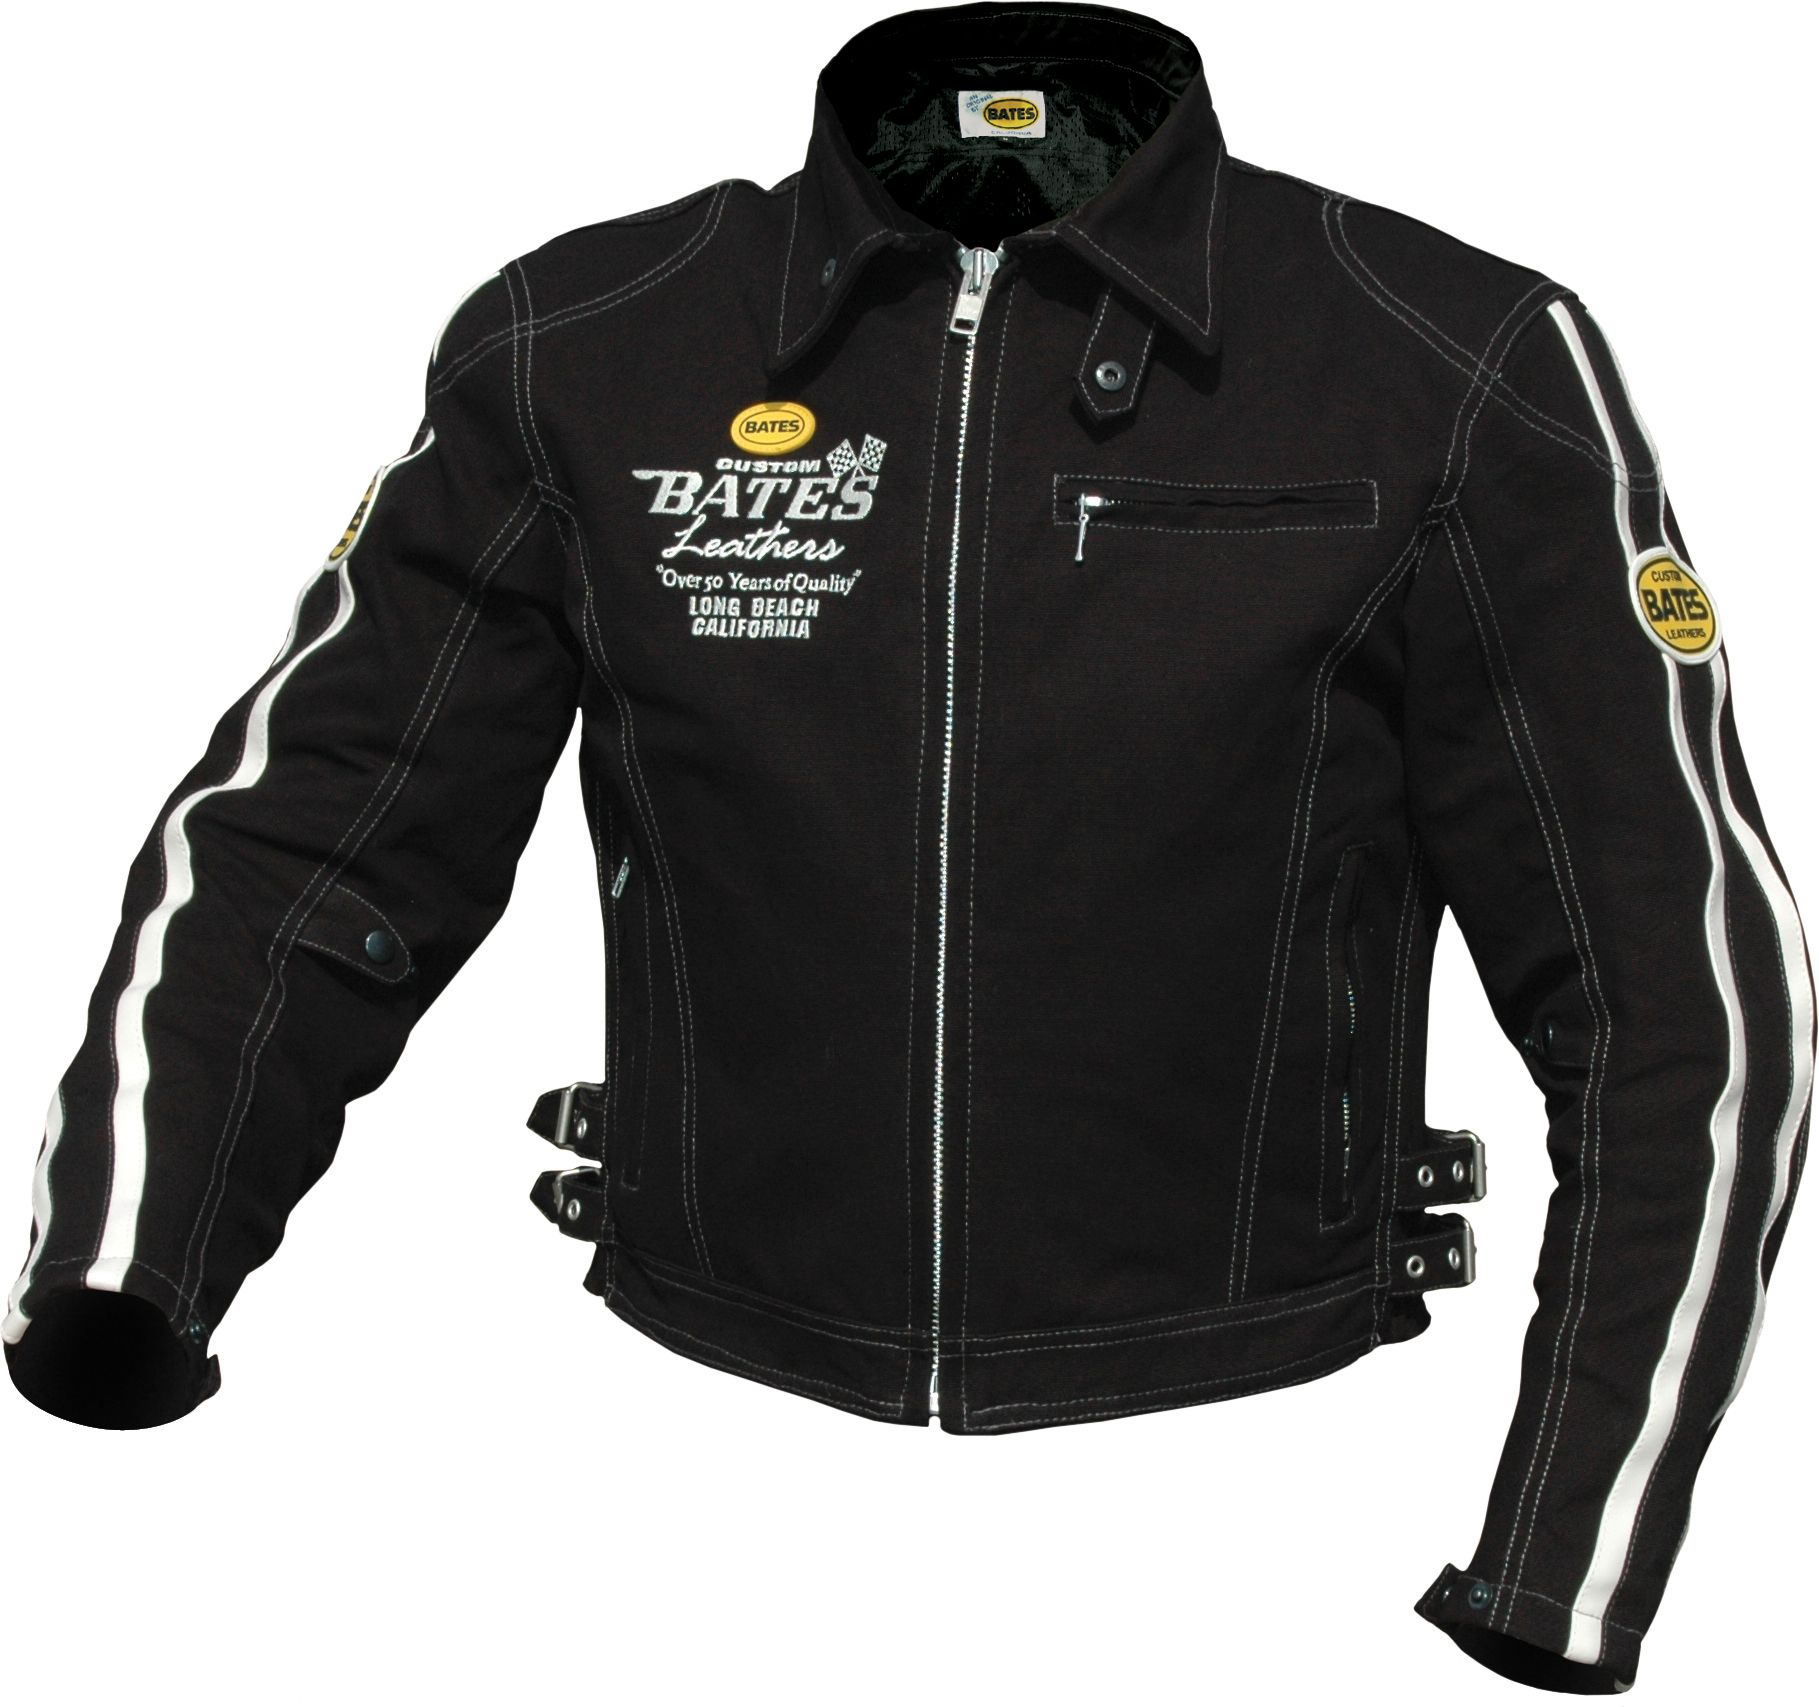 c9b5138bf Six Retro Motorcycle Jackets - Classic Motorcycle Gear | Motorcycle ...